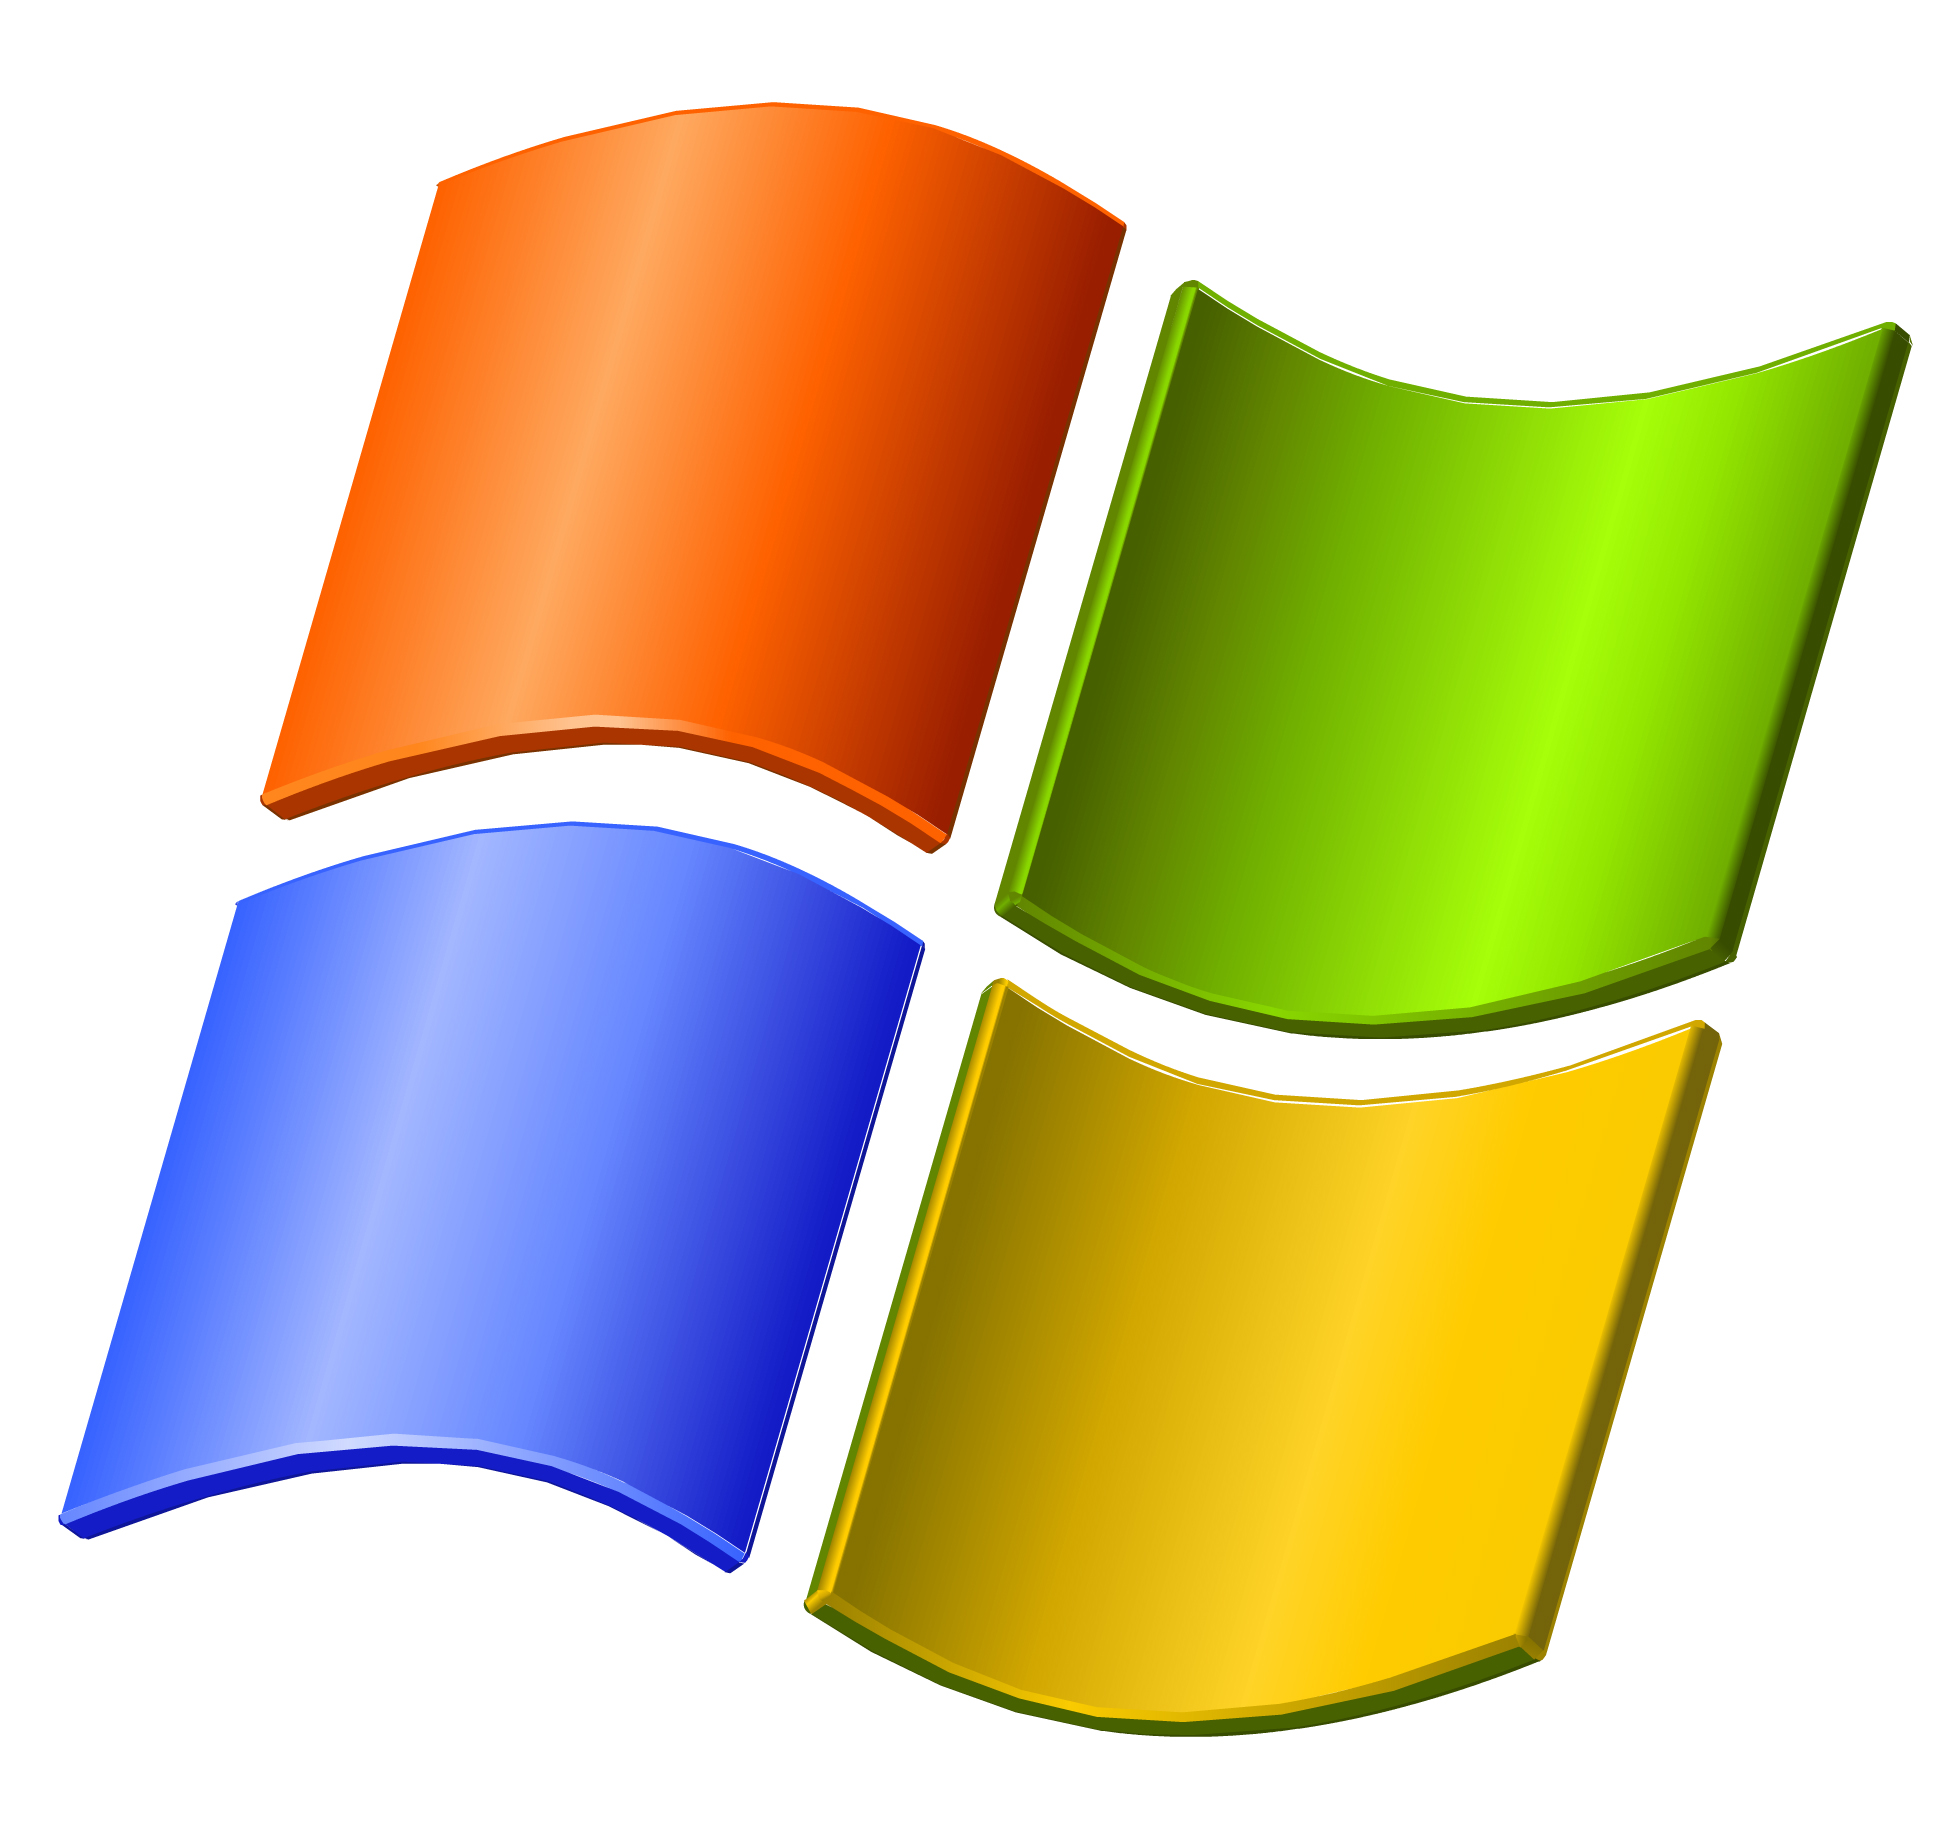 logos de windows xp: